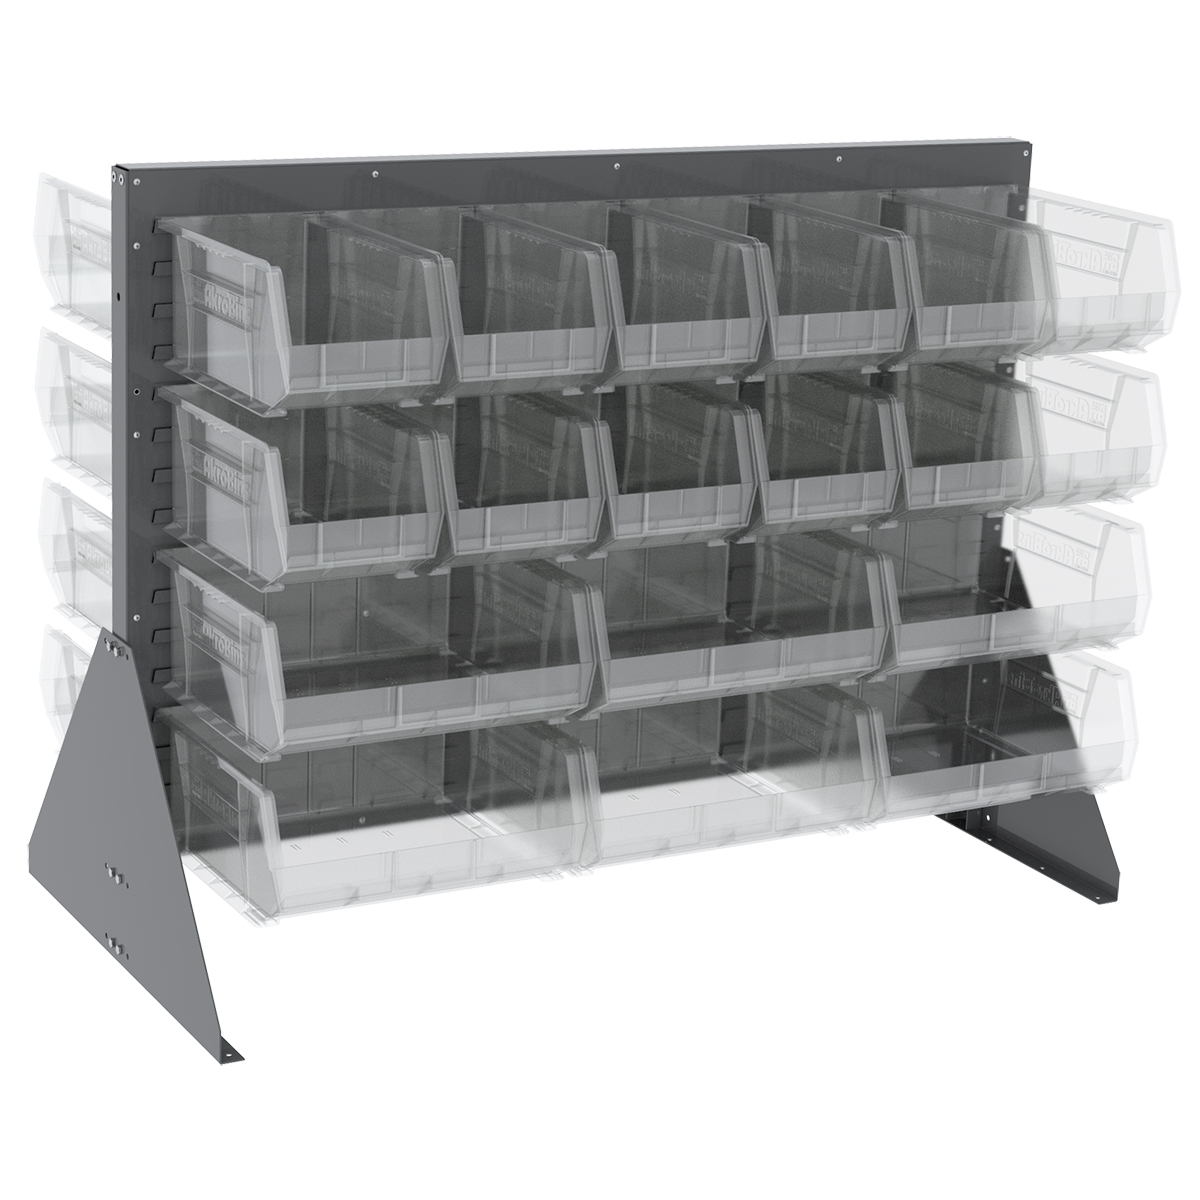 Item DISCONTINUED by Manufacturer.  Low Profile Floor Rack, 2-Sided w/ 36 AkroBins, Gray/Clear (30607GYASSTSC).  This item sold in carton quantities of 1.